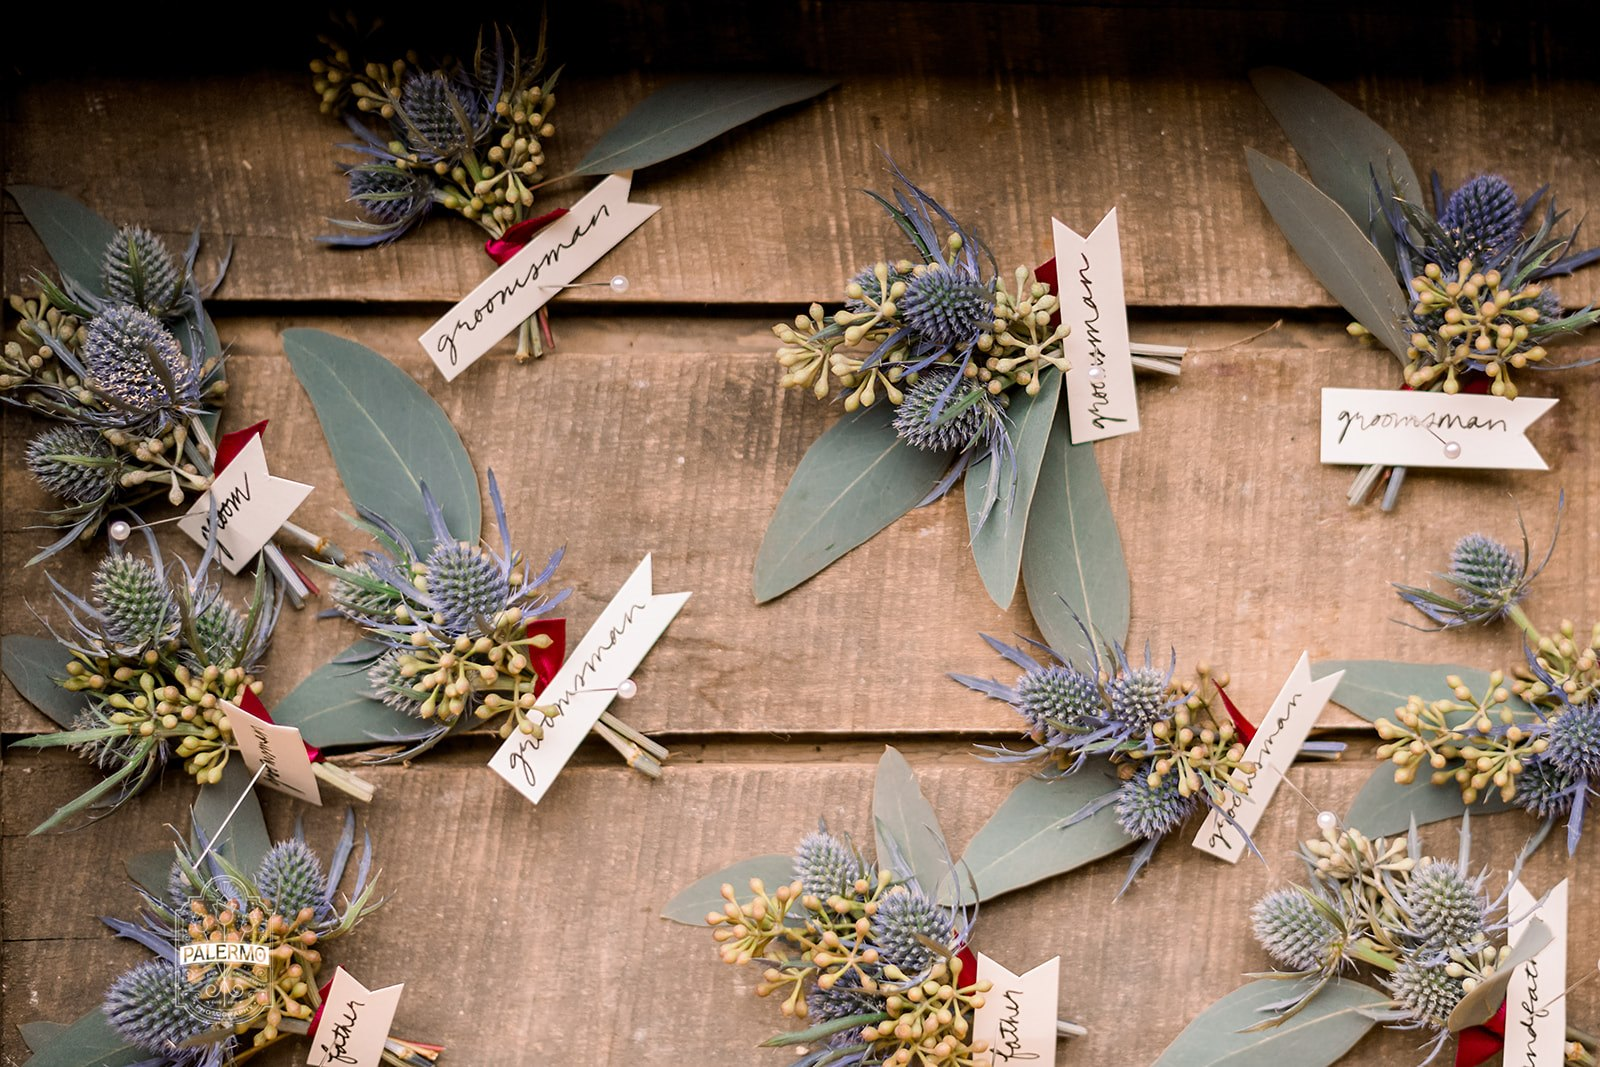 Wedding boutonnieres for fall barn wedding in Pittsburgh, PA planned by Exhale Events. Find more wedding inspiration at exhale-events.com!